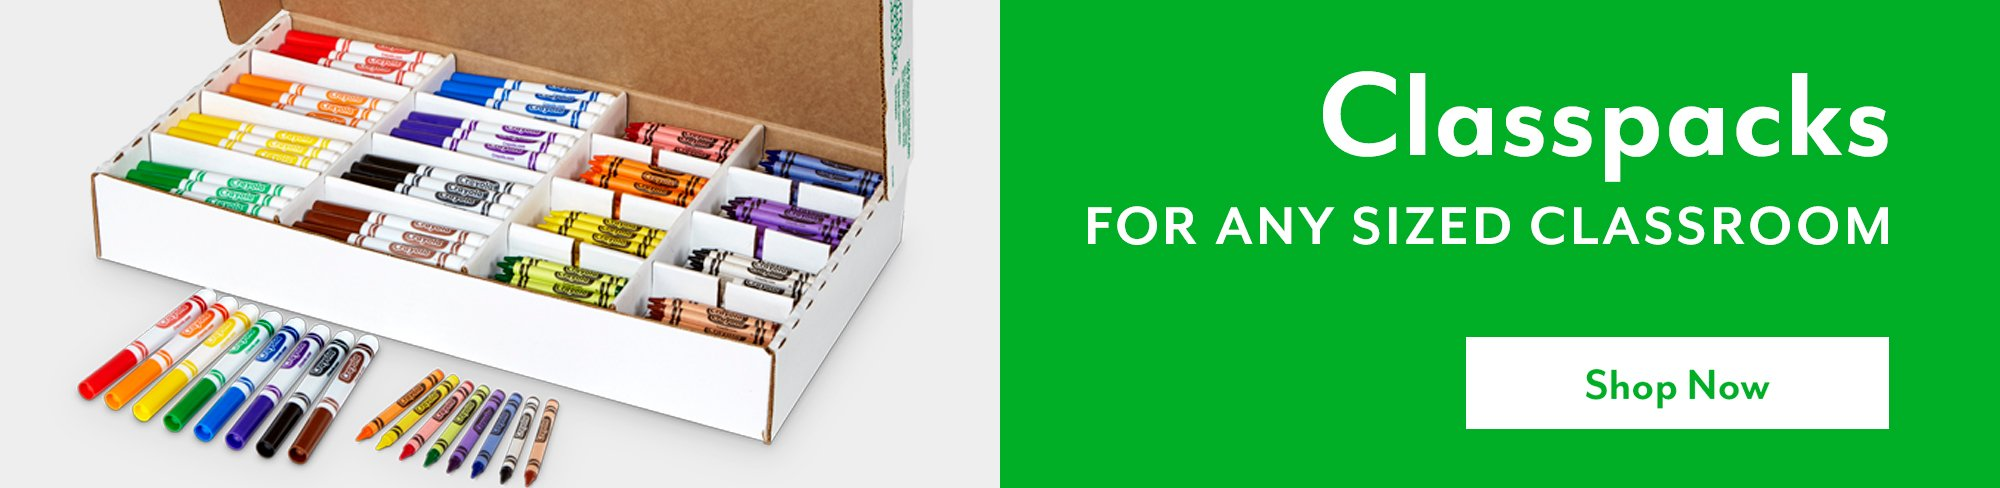 Classpacks for any sized classroom - Shop Now